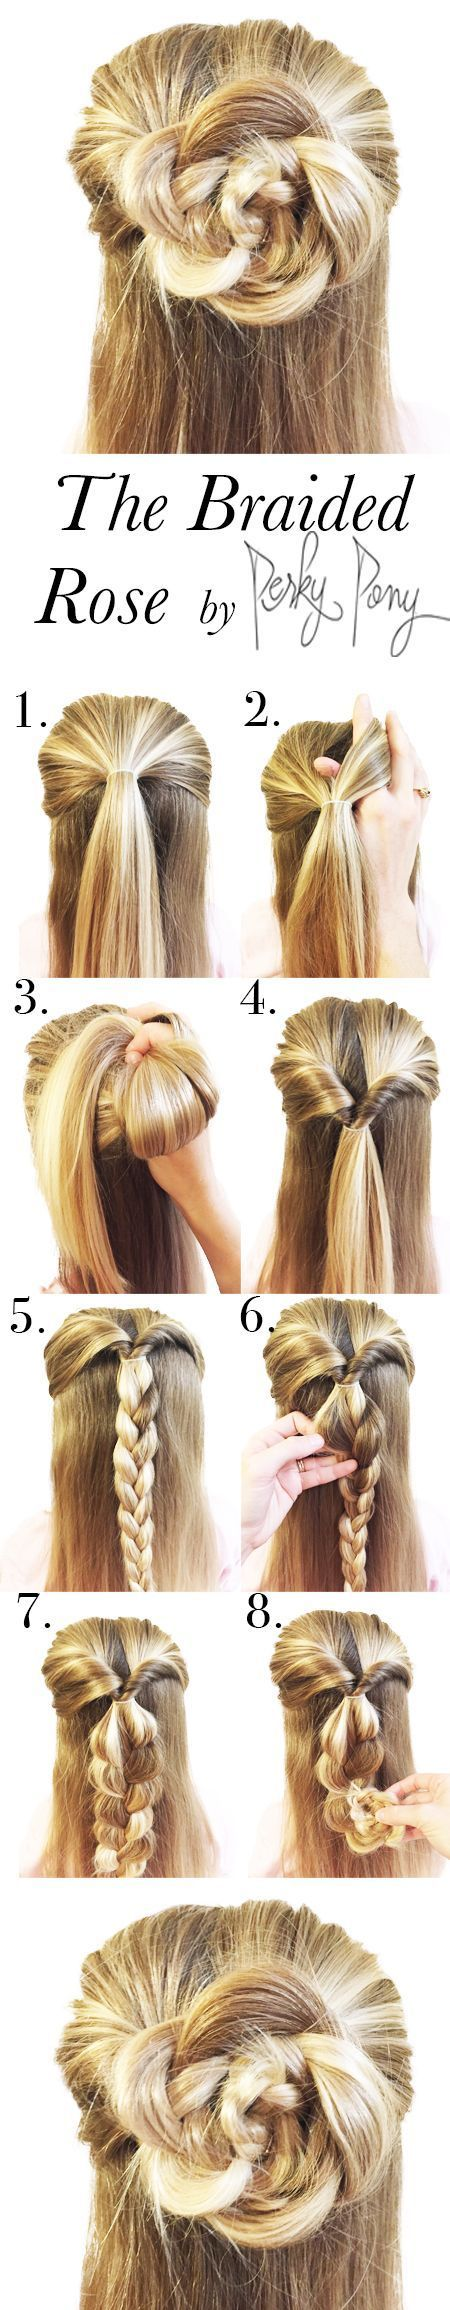 simple and easy hairstyles for your daily look easy hairstyles